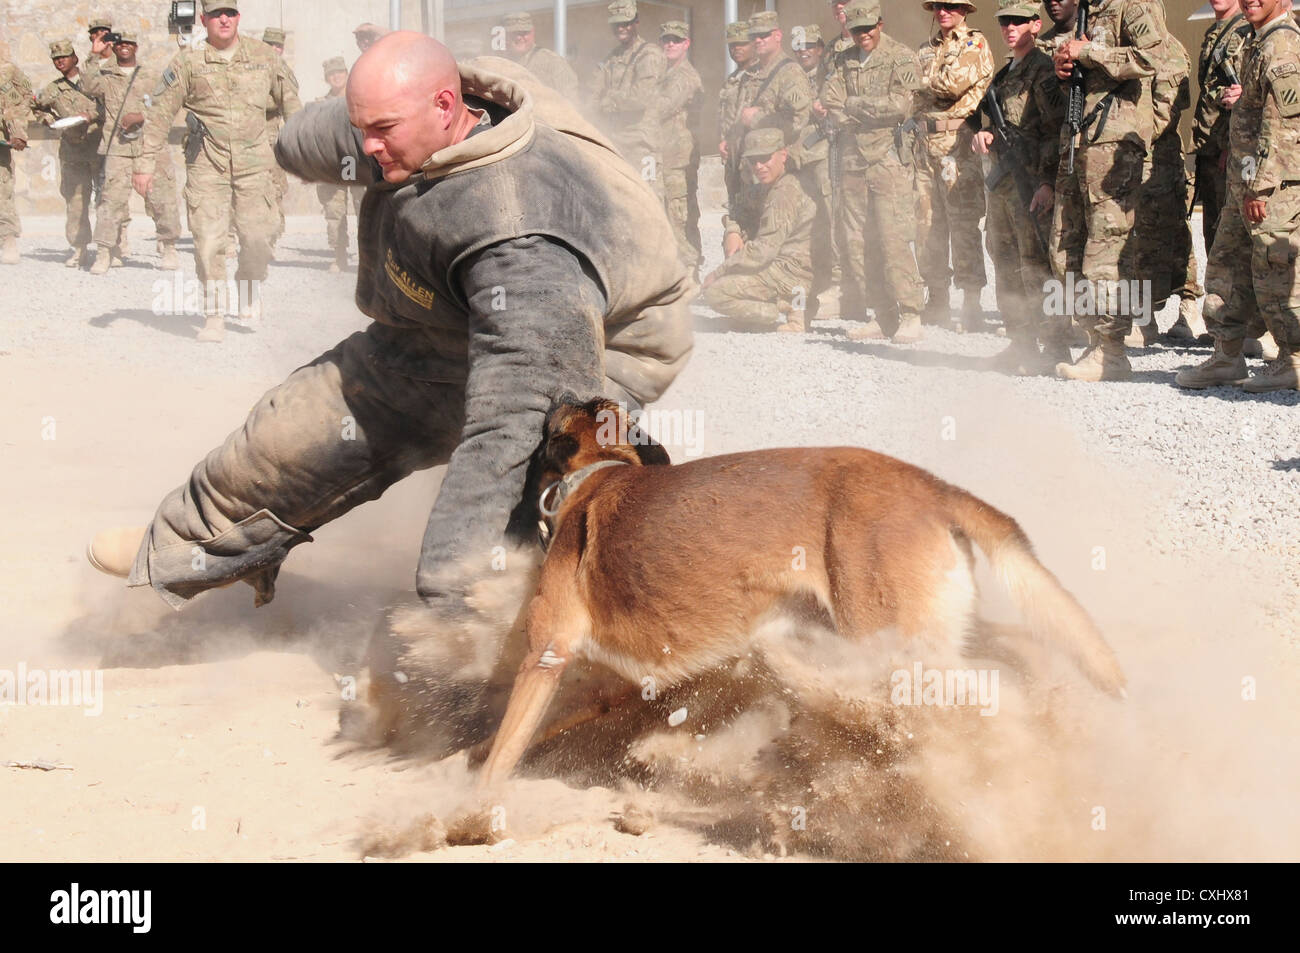 Simple Soldier Army Adorable Dog - a-us-army-soldier-wears-a-protective-suit-while-being-attacked-by-CXHX81  Pic_821124  .jpg